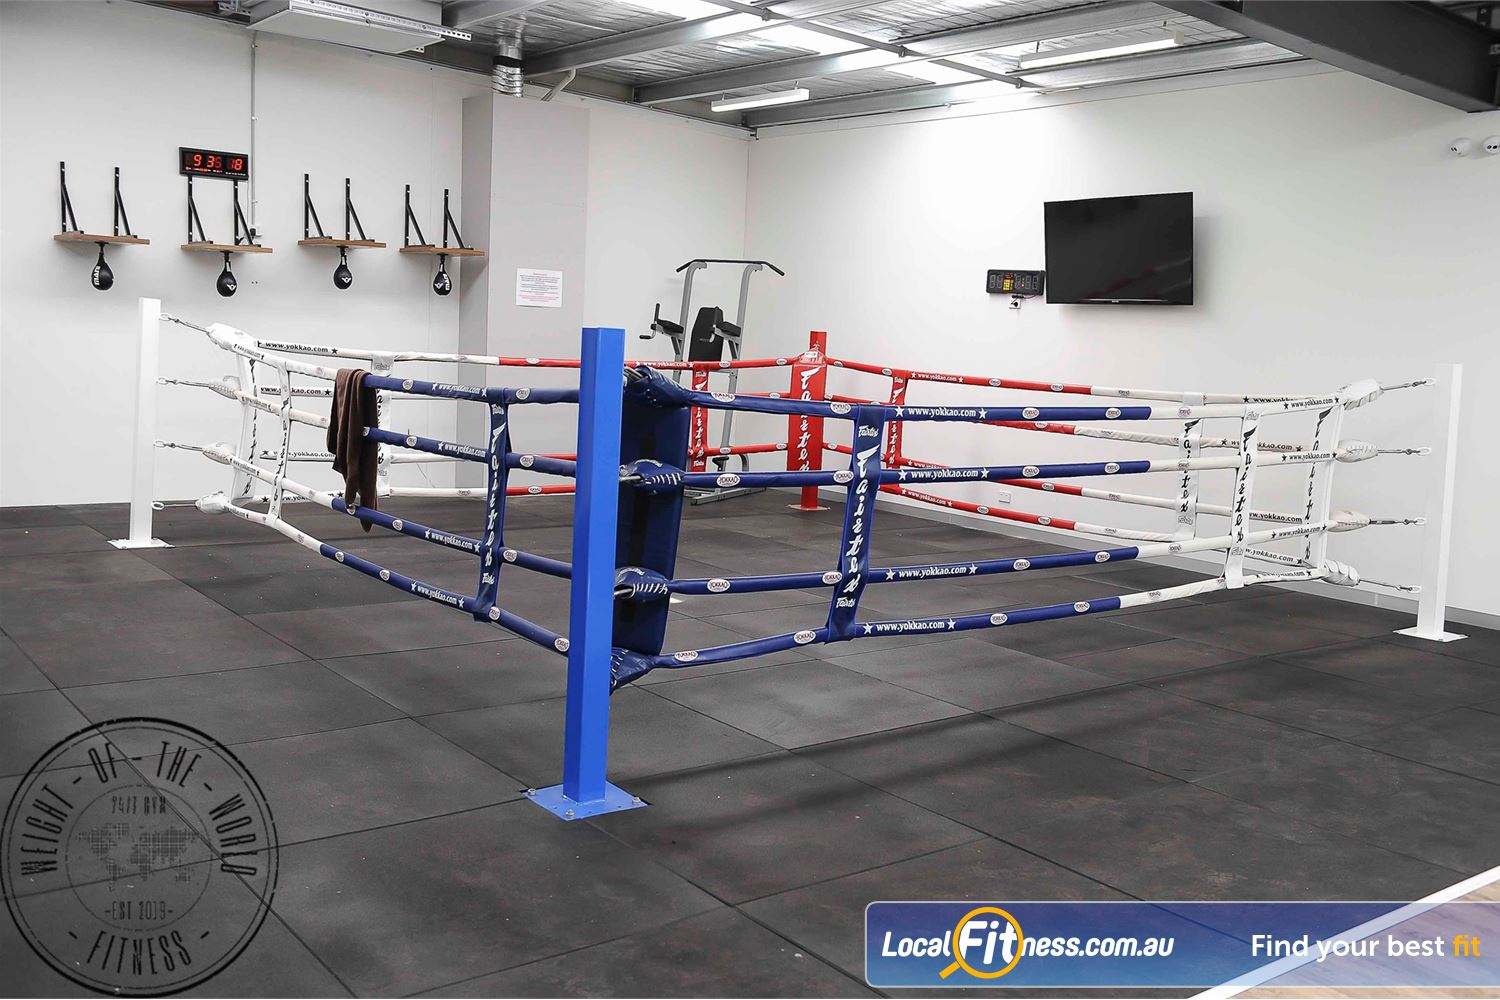 Weight of the World Fitness Altona North Weight of the World Fitness includes a professional boxing ring.